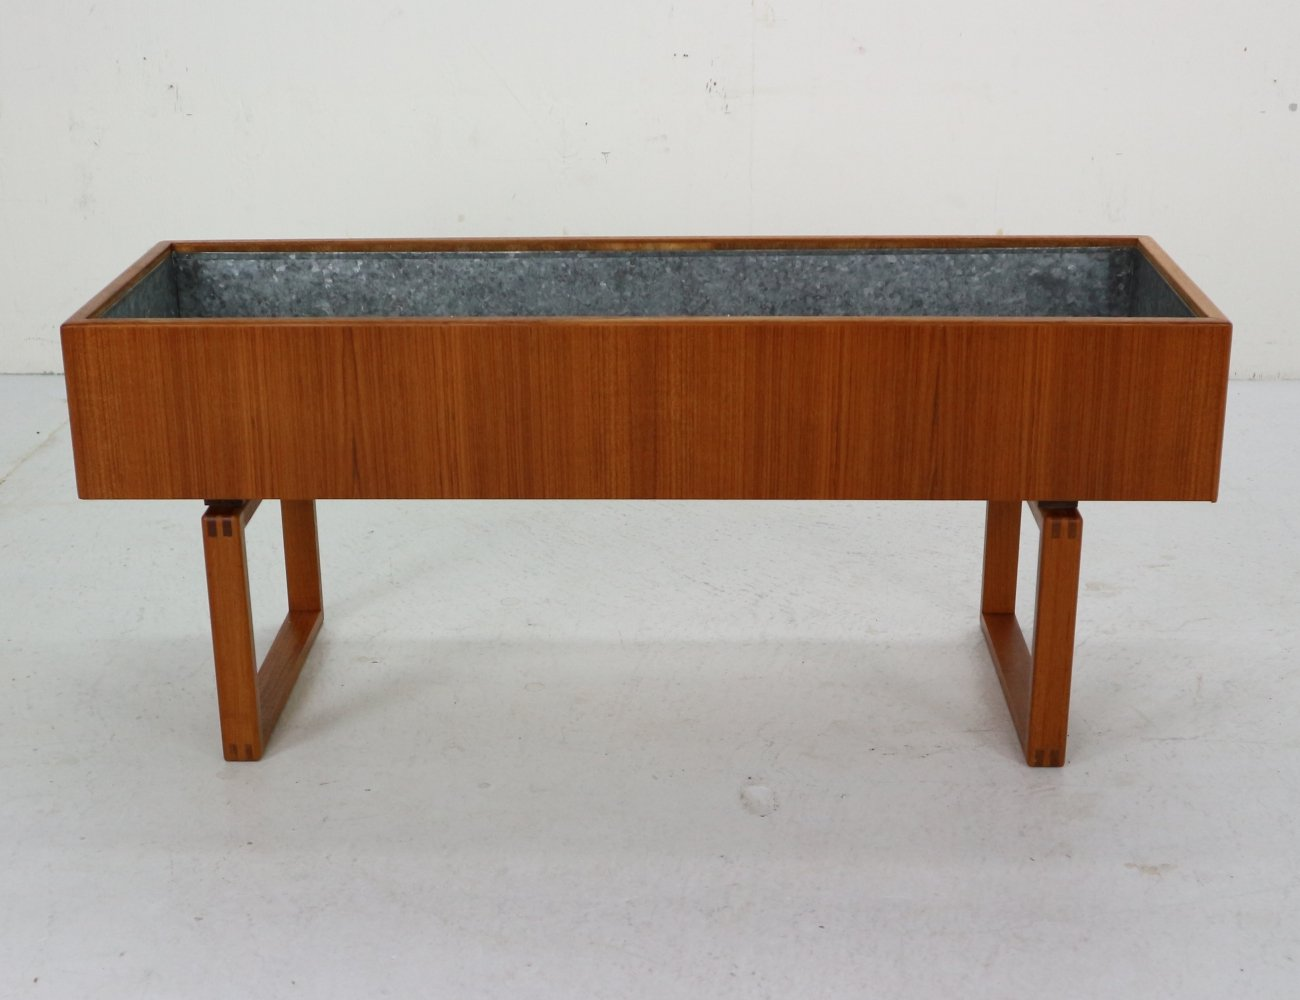 Scandinavian Modern Teak Planter by Kai Kristiansen for Salin Mobler, 1960